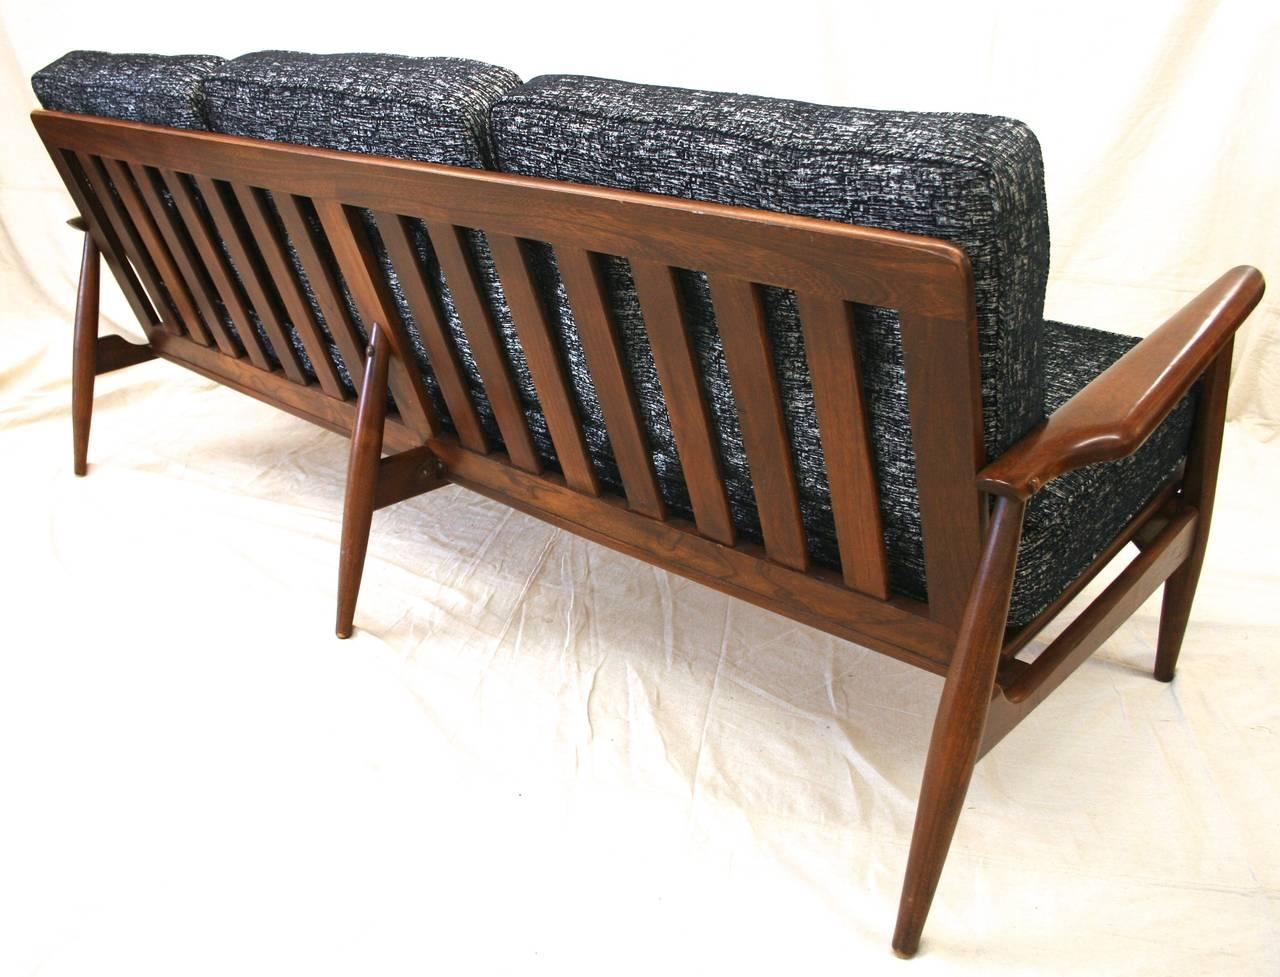 Modern danish sofa long scandinavian modern sofa danish for Danish modern reproduction